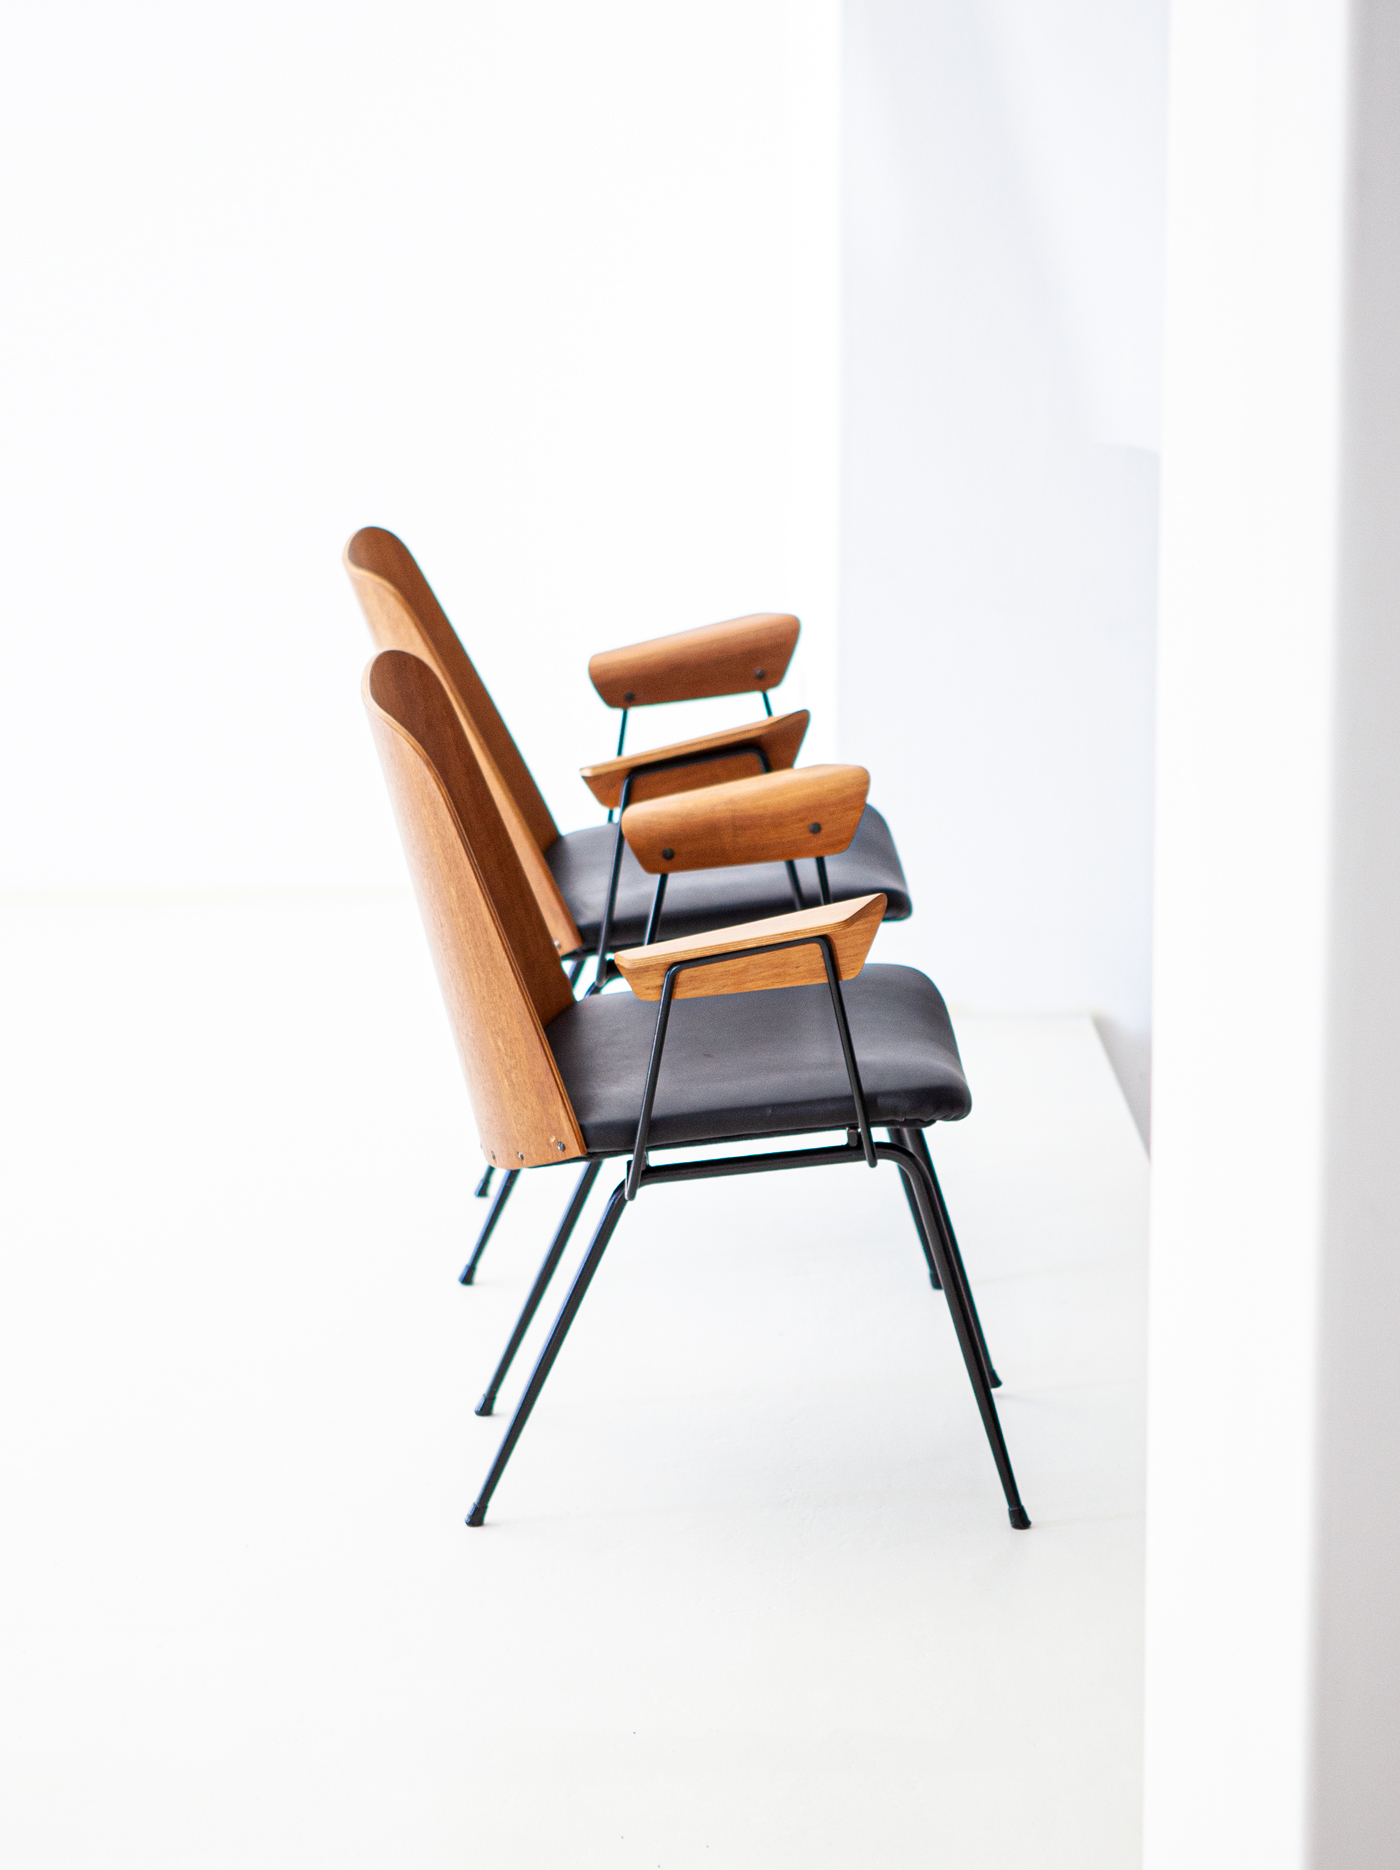 Italian-modern-desk-chairs-by-carlo-ratti-9-se287